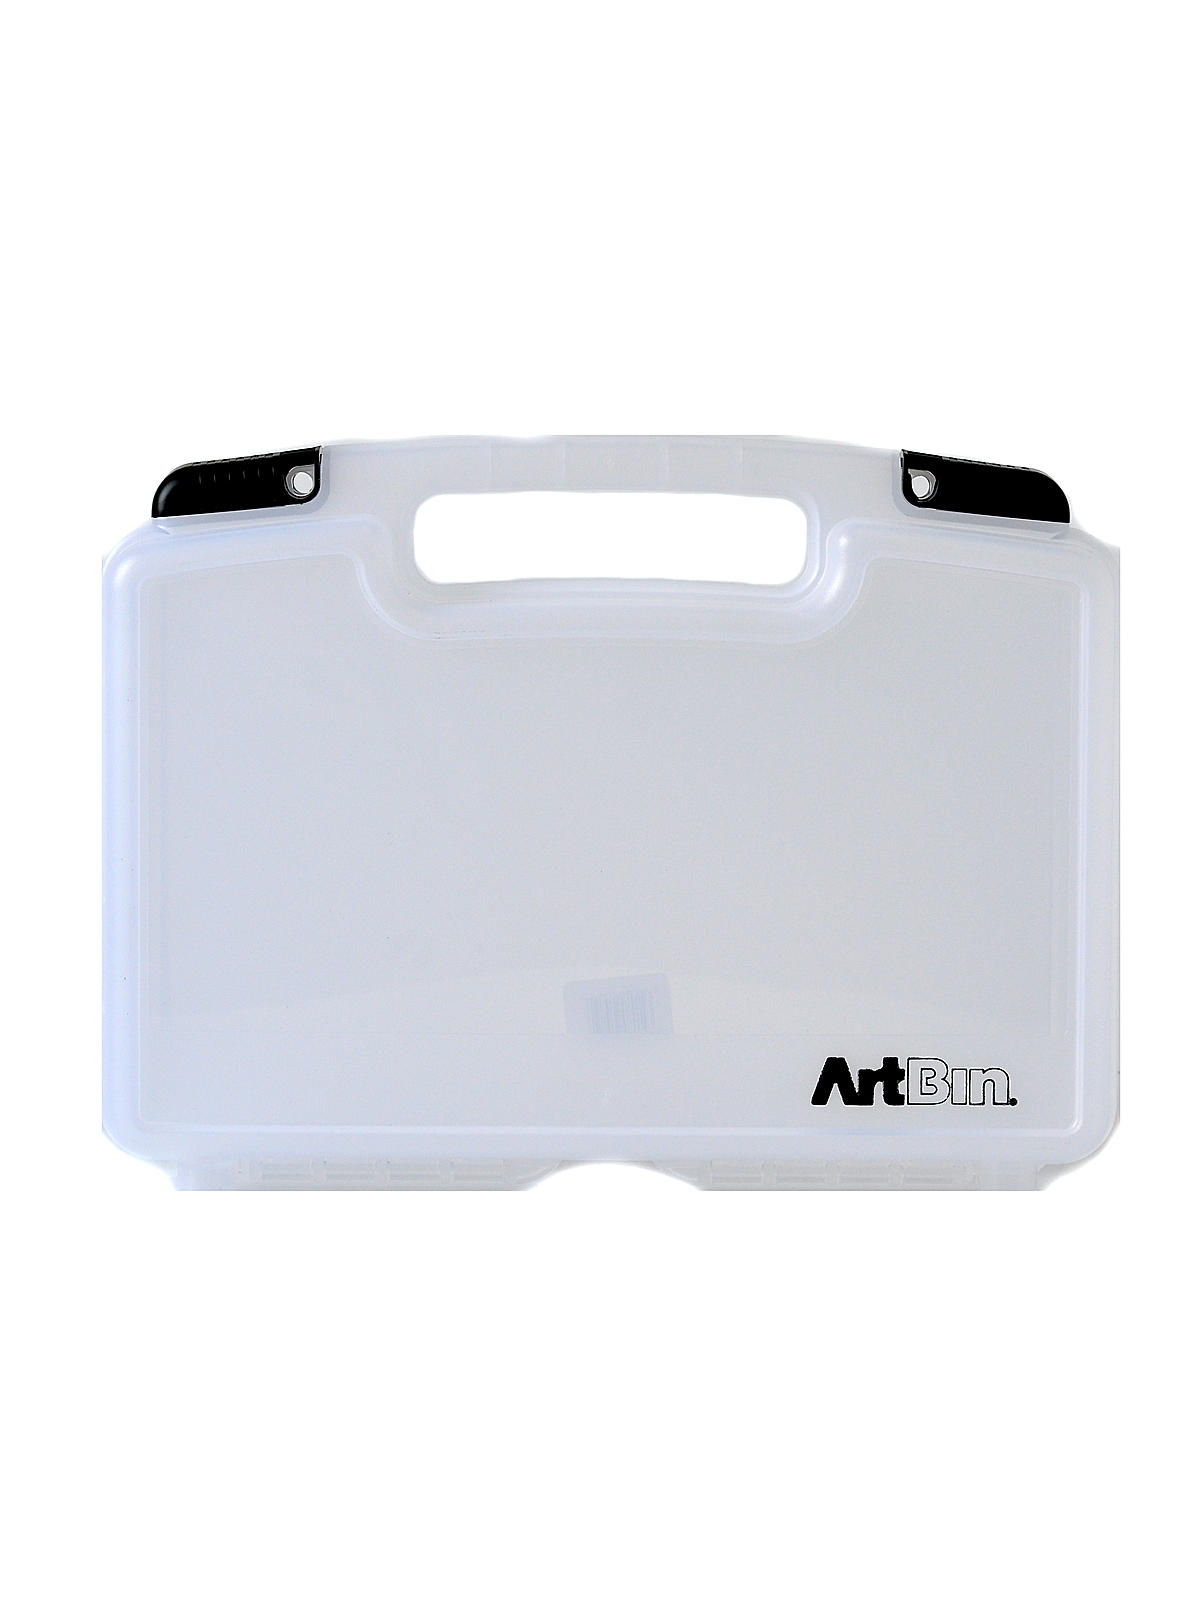 Quick View Carrying Cases 14 In. X 3 3 8 In. X 10 1 4 In.